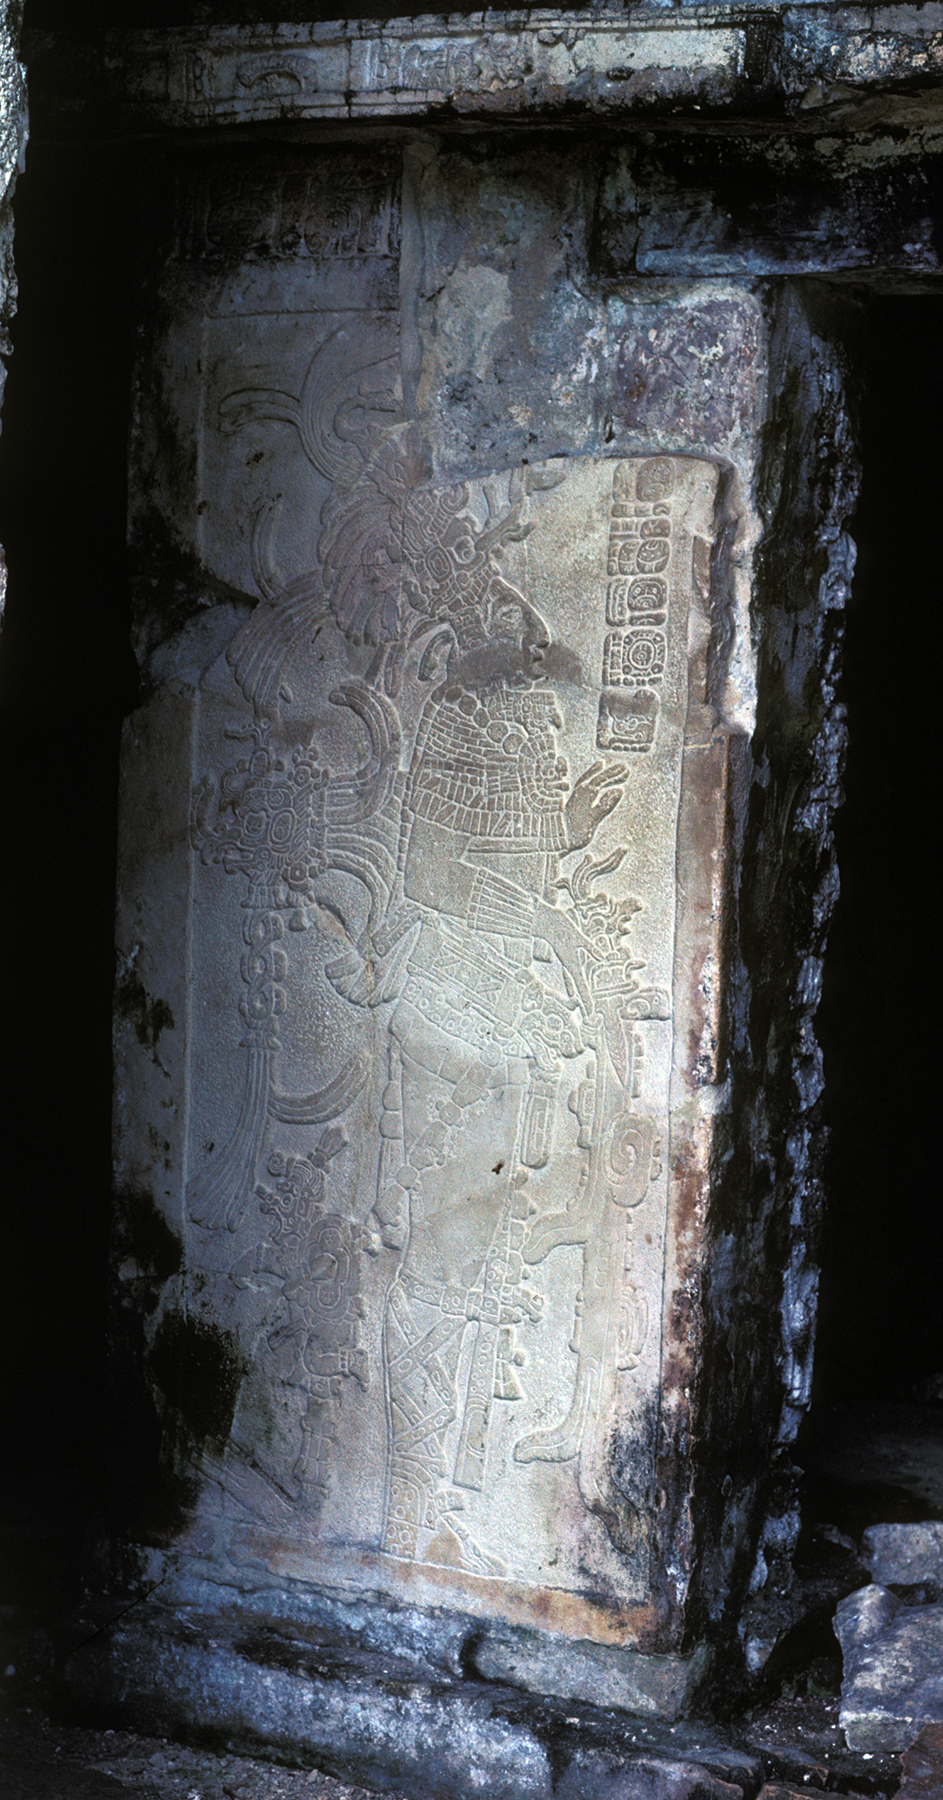 A tall vertical stone with detailed carving of a person with an elaborate headdress and holding what appears to be a knife